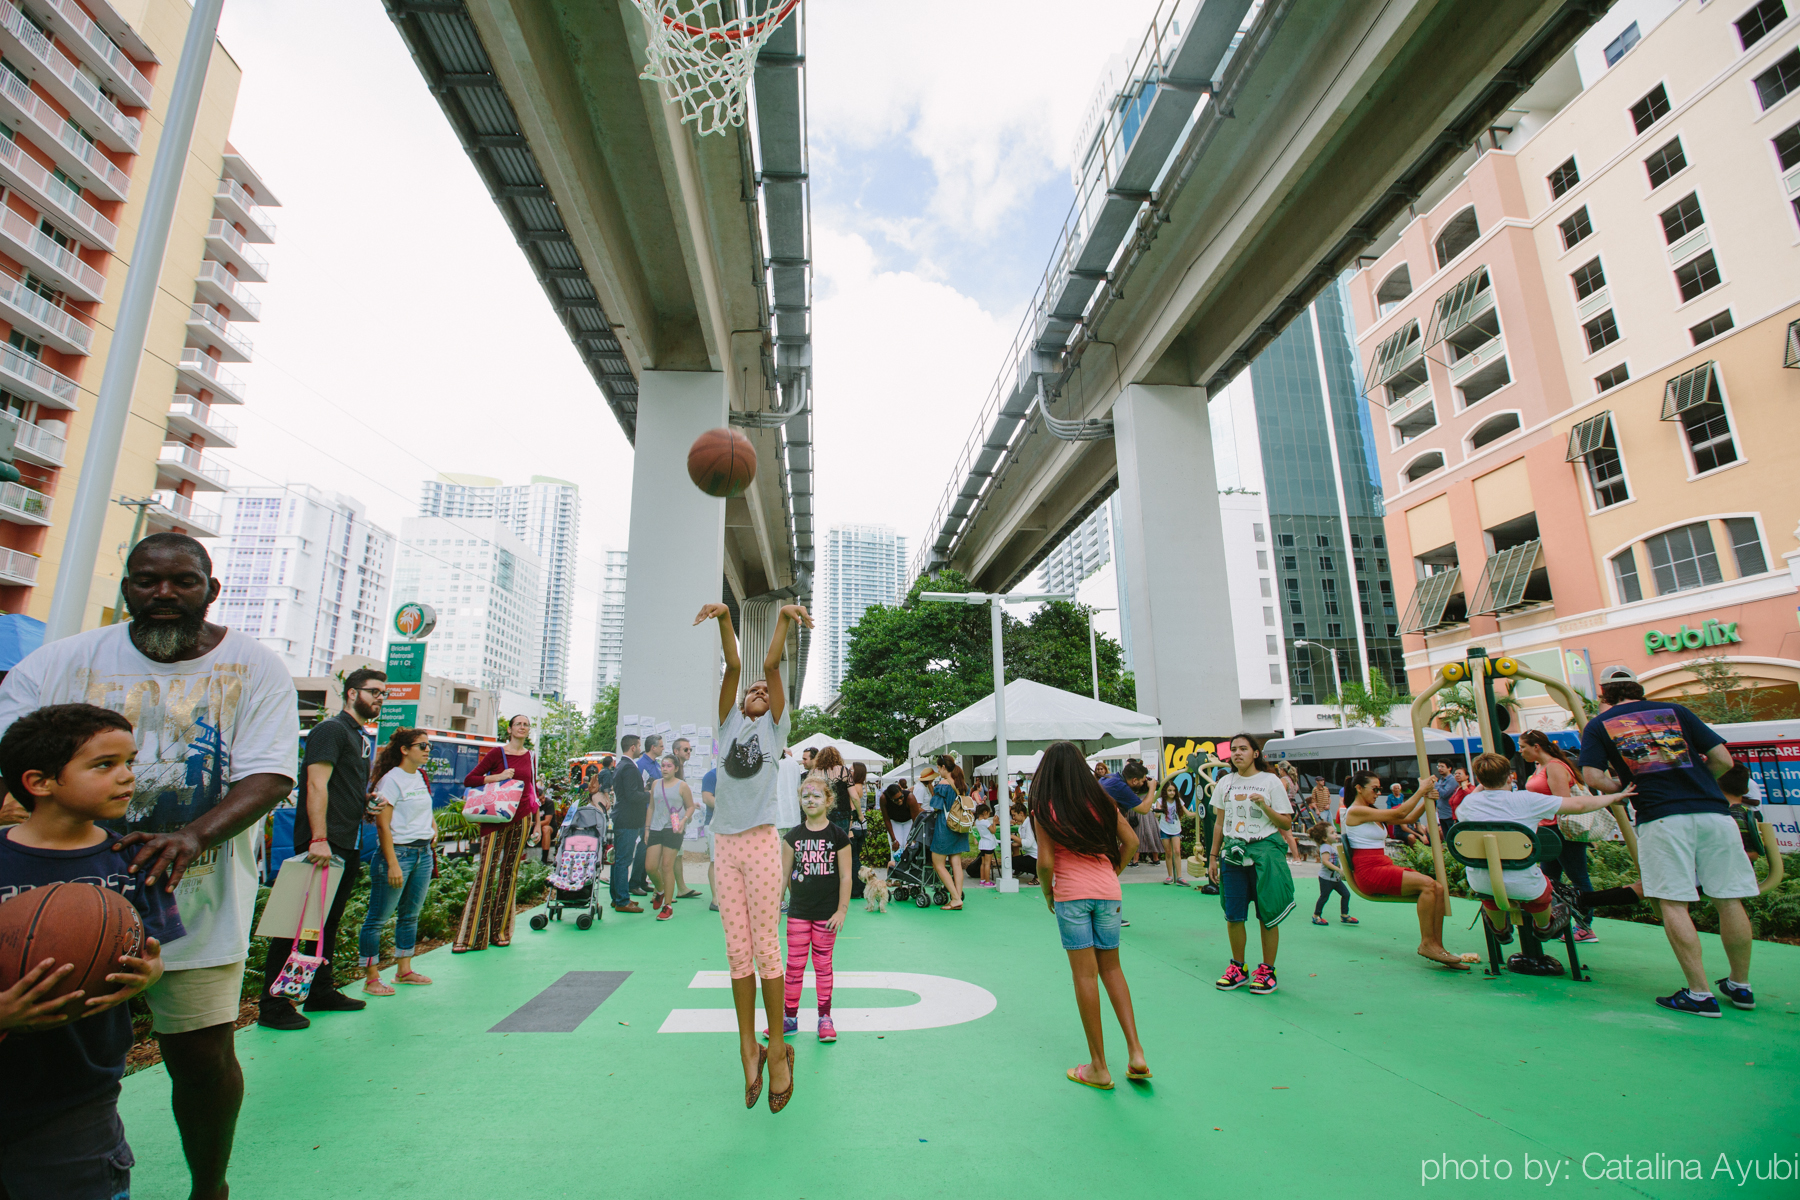 20 Emerging City Champions chosen to lead innovative urban projects